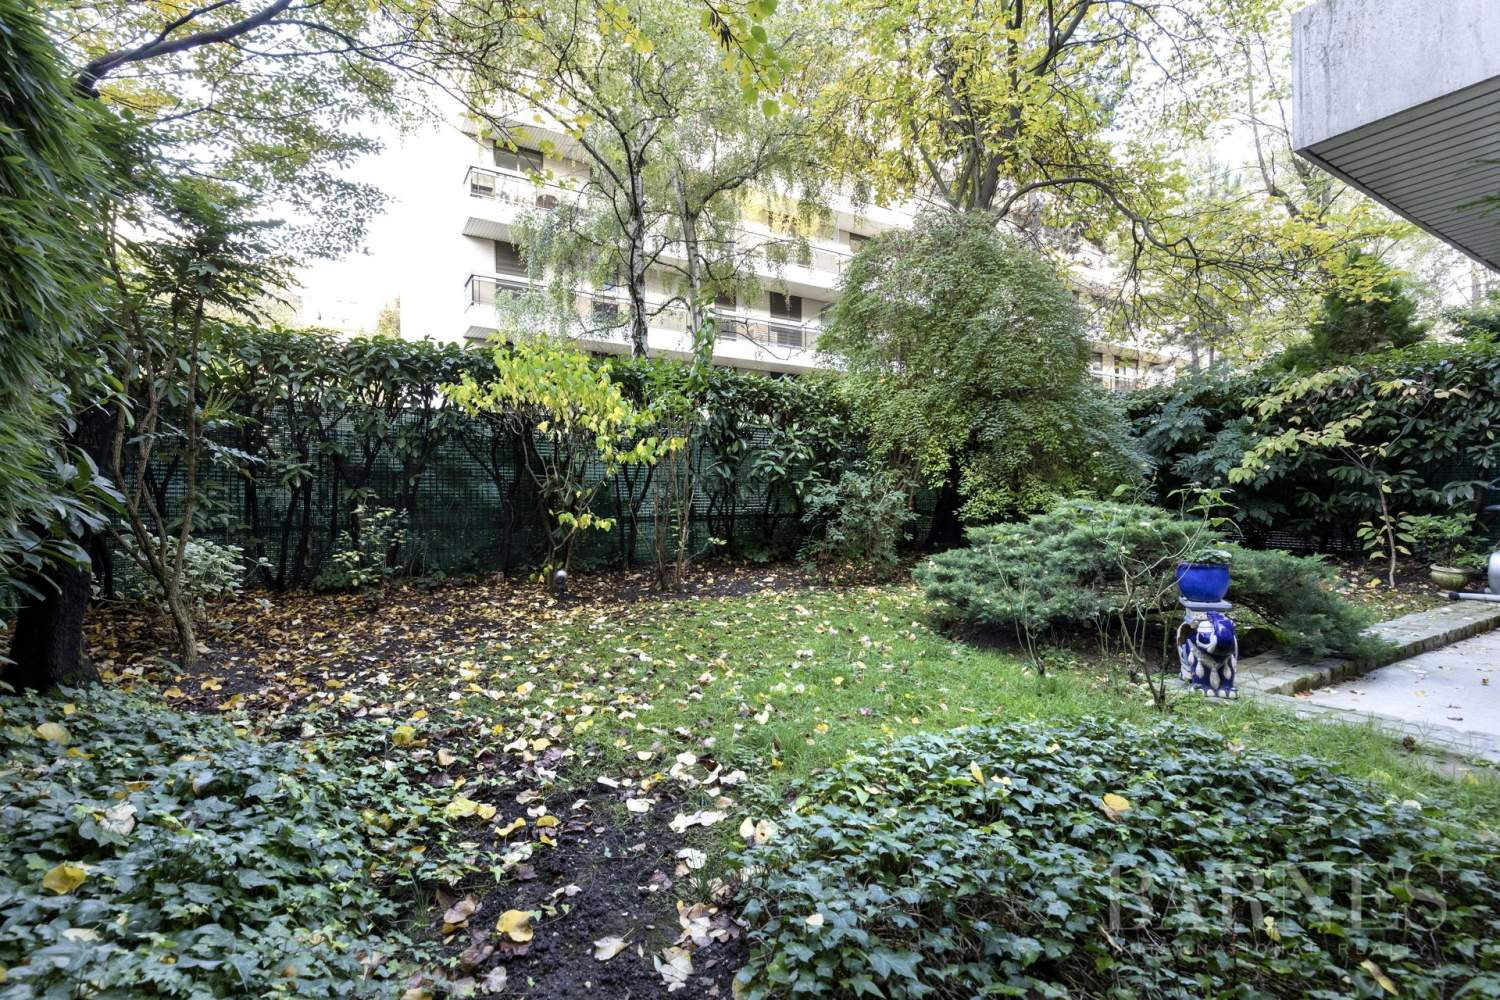 NEUILLY - JARDIN et TERRASSE - 2/3 CHAMBRES - PARKING picture 7